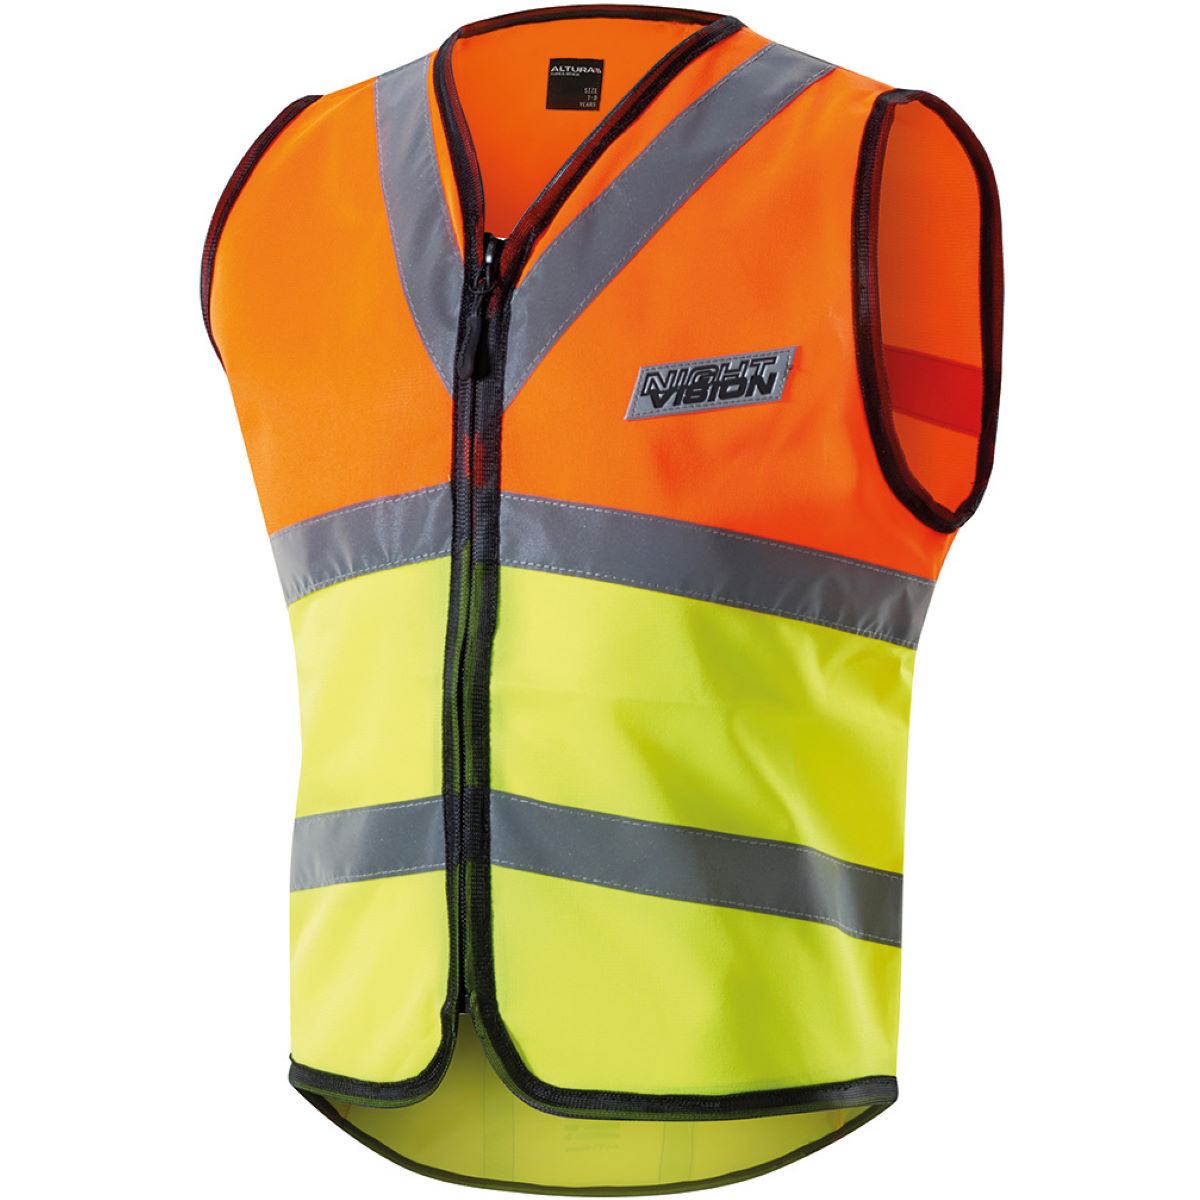 Gilet de sécurité Enfant Altura Night Vision - 7-9 years Jaune fluo